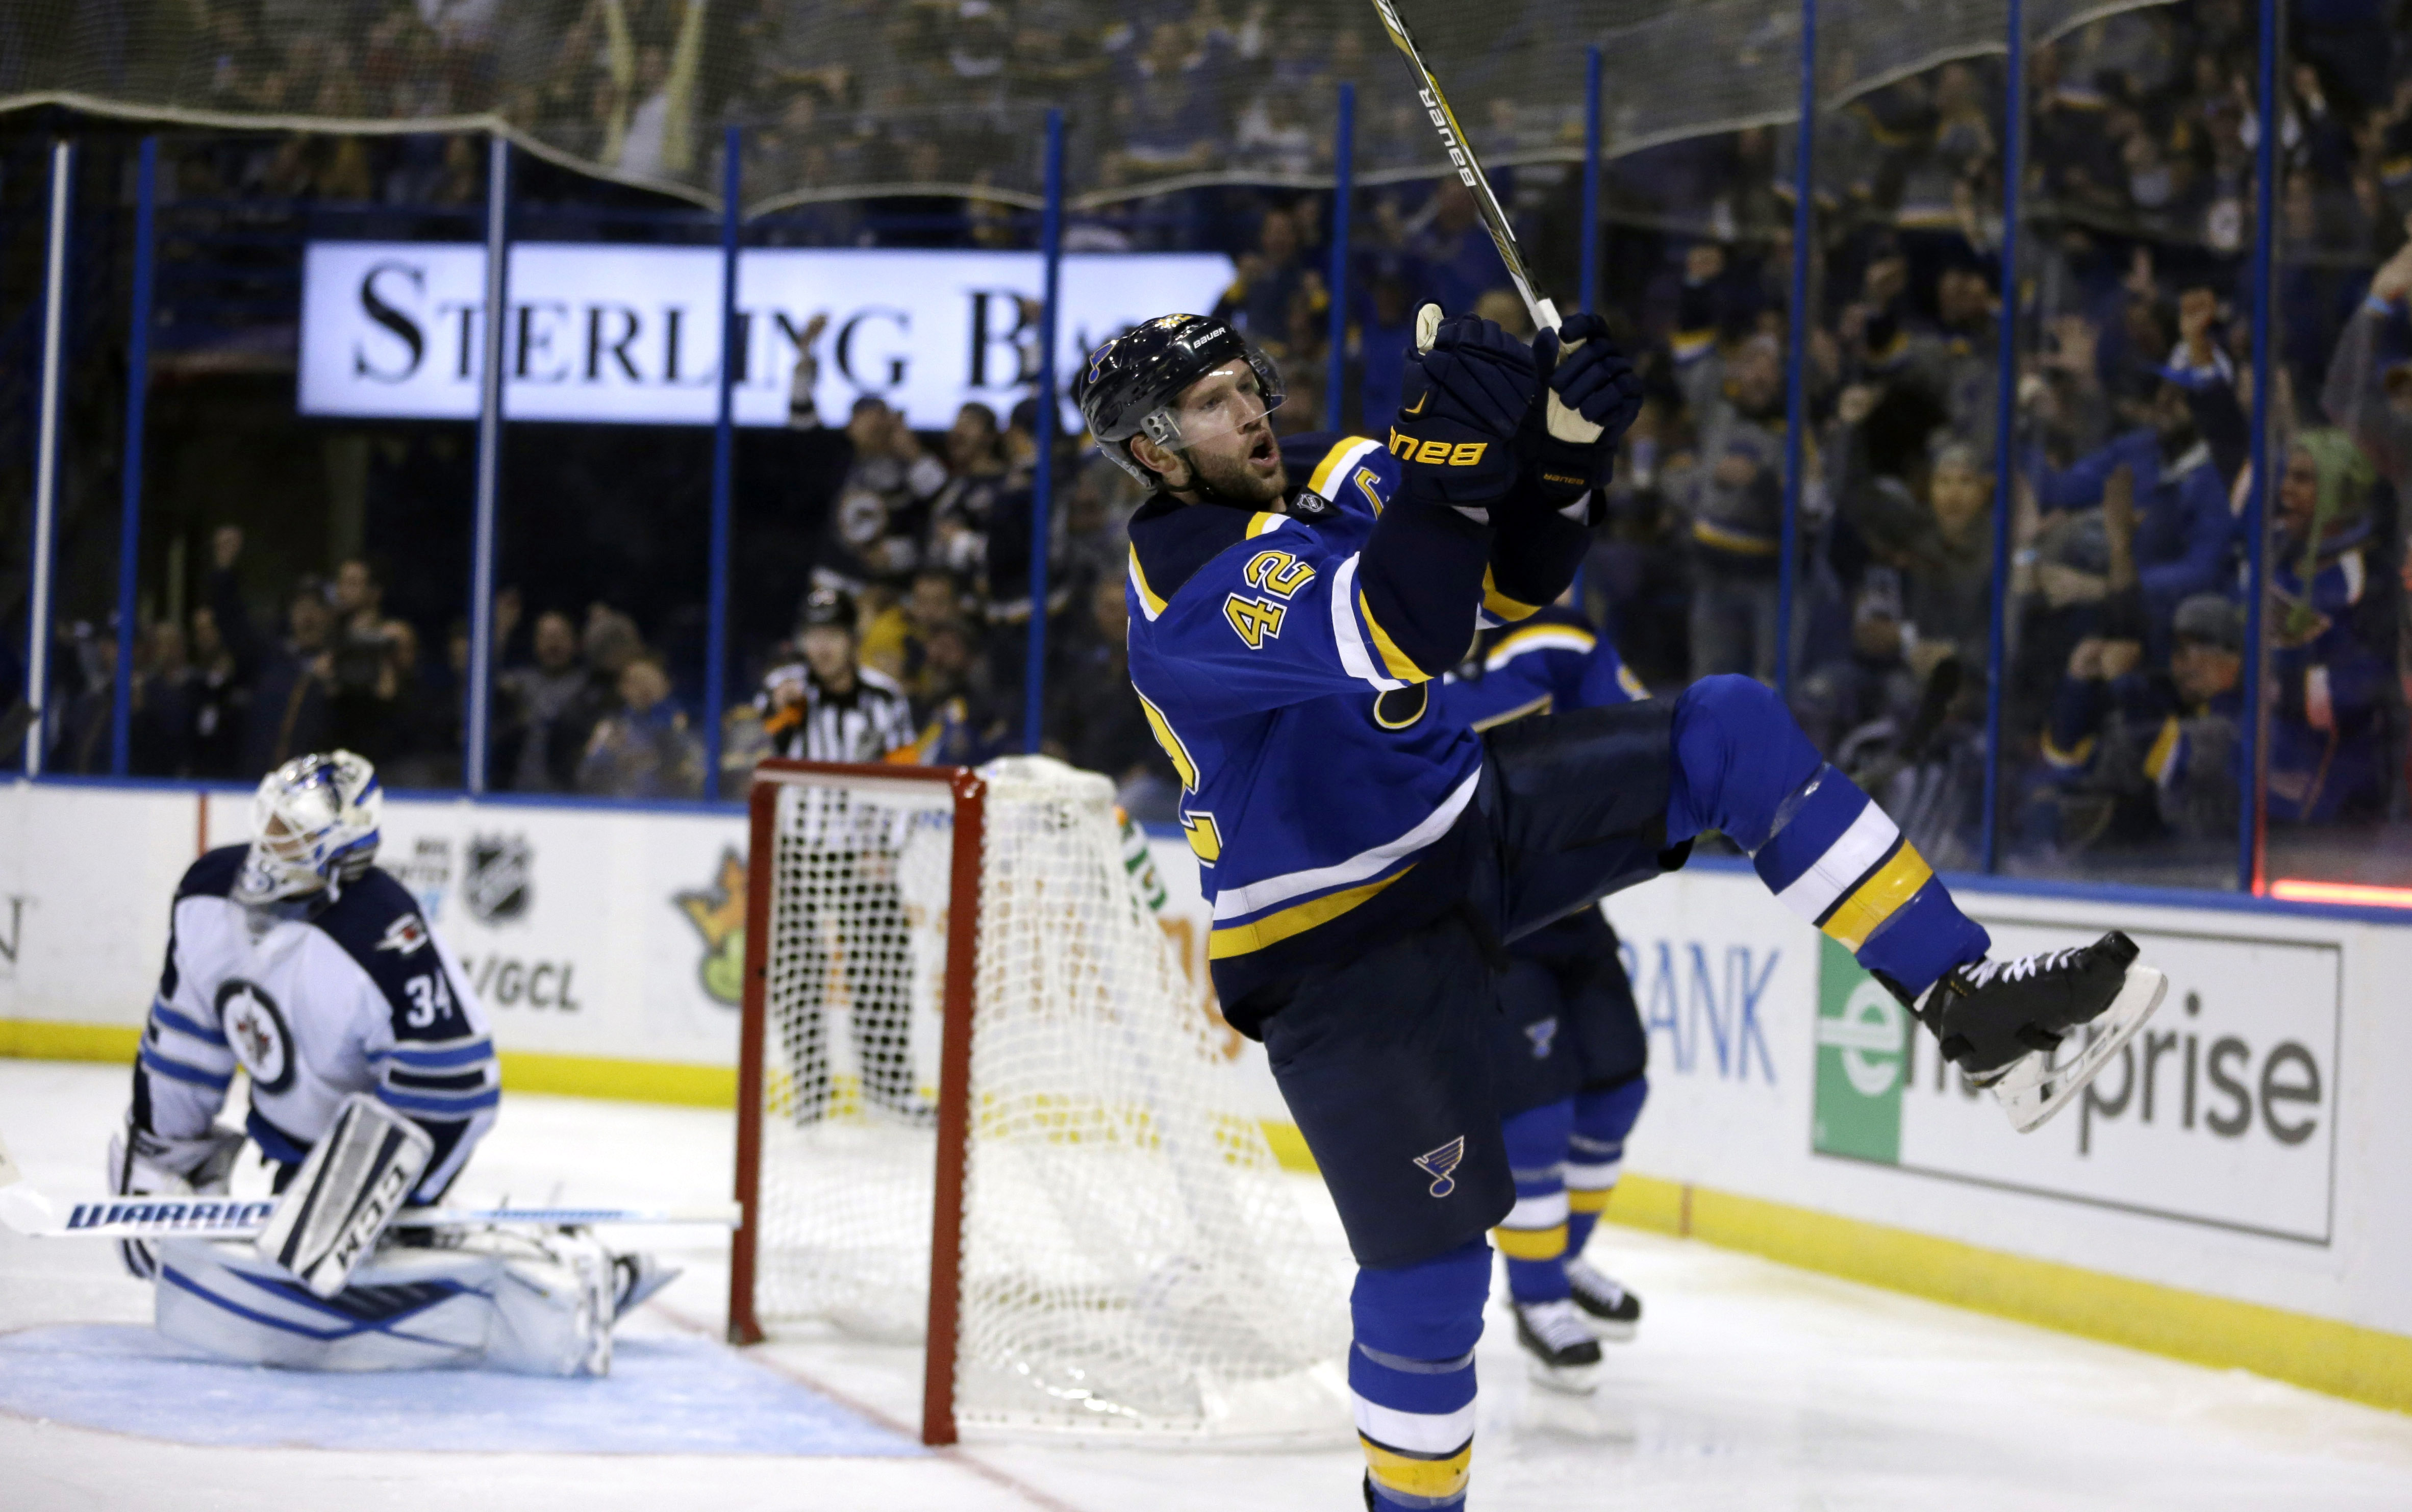 St. Louis Blues' David Backes celebrates after scoring past Winnipeg Jets goalie Michael Hutchinson, left, during the second period of an NHL hockey game Monday, Nov. 16, 2015, in St. Louis. (AP Photo/Jeff Roberson)